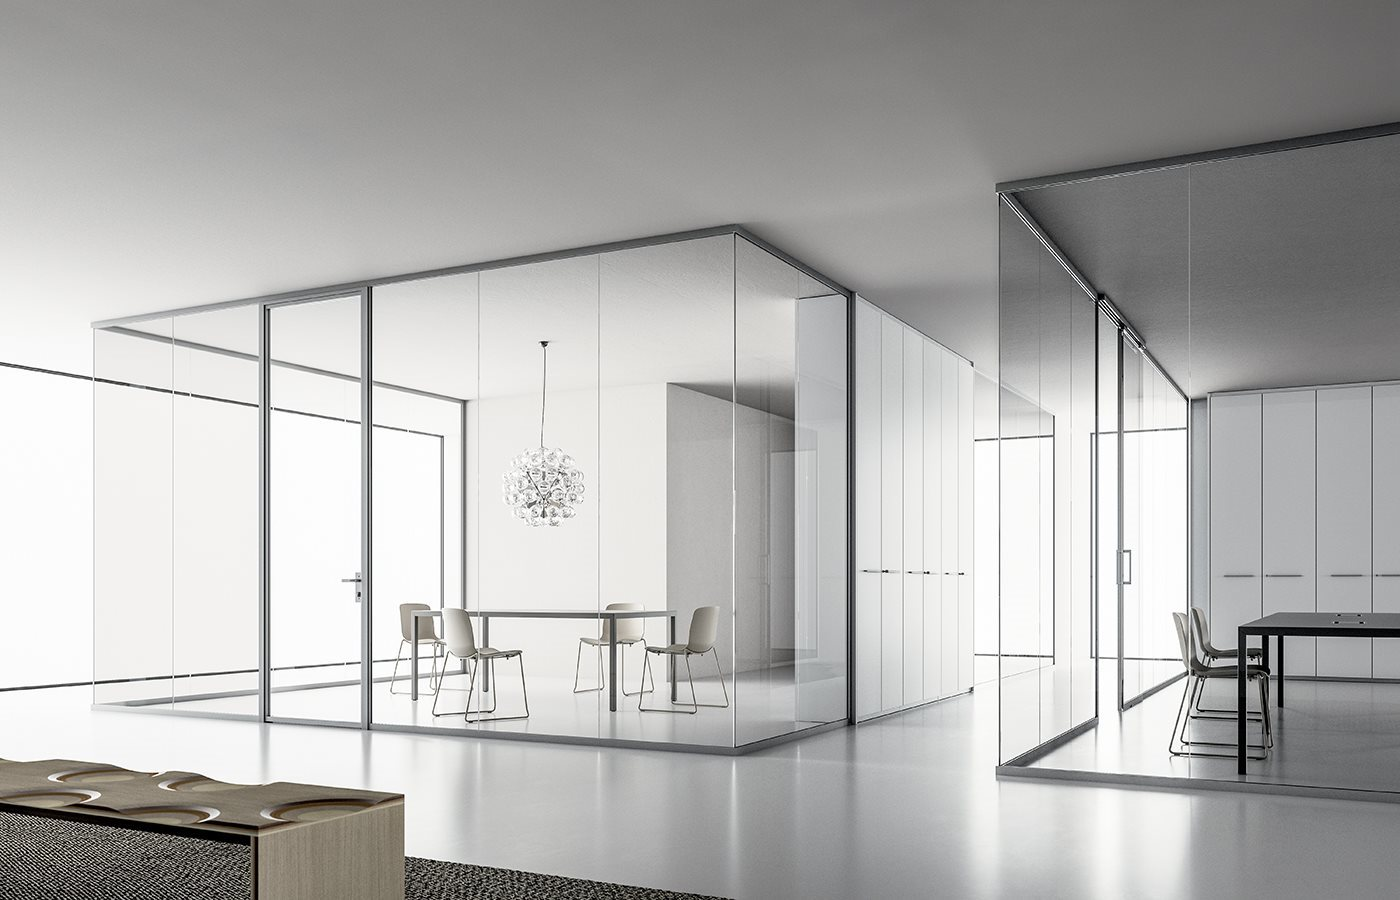 Pareti Divisorie In Vetro single-glazed partition wall - dv602 - dvo